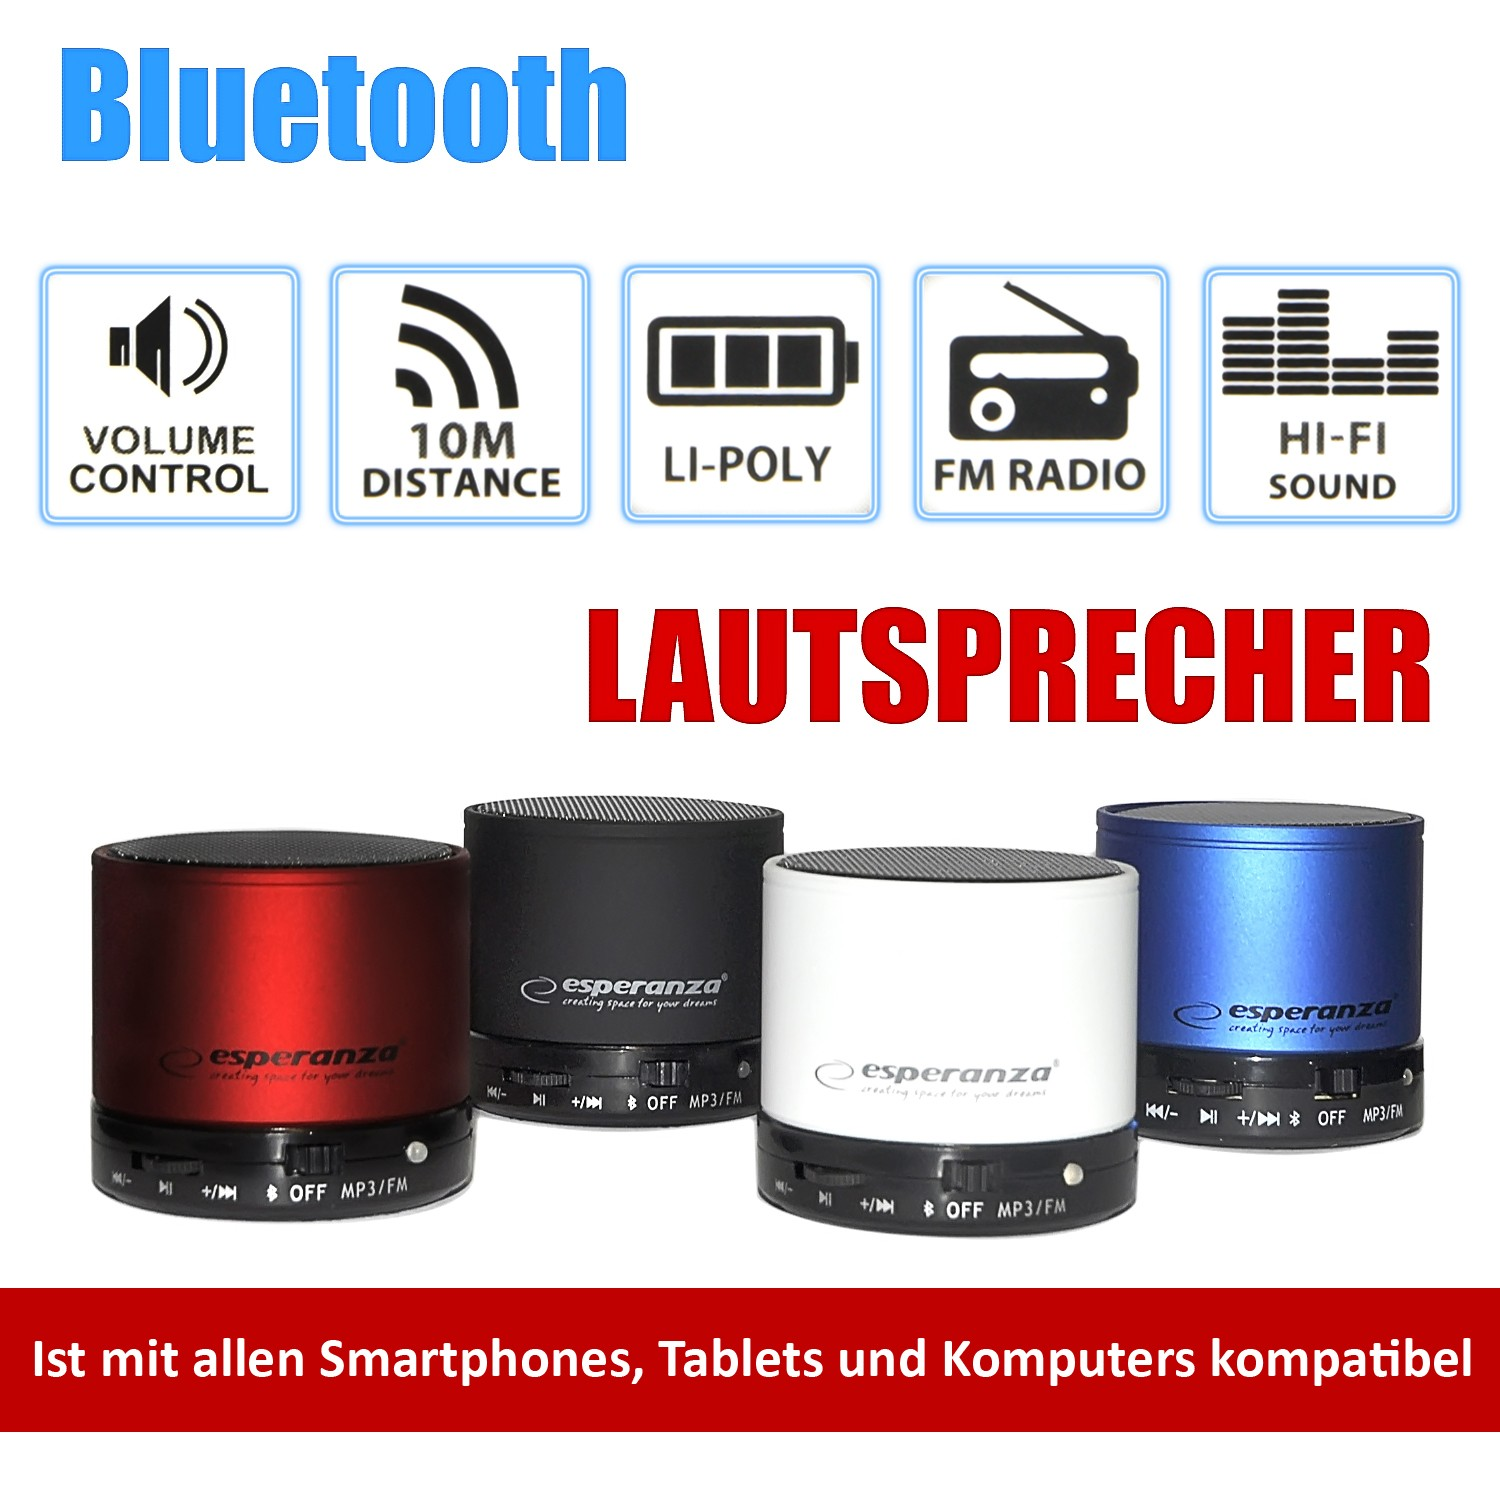 Mini Wireless Bluetooth Lautsprecher Sound Box Radio MP3 in verschiedenen Farben